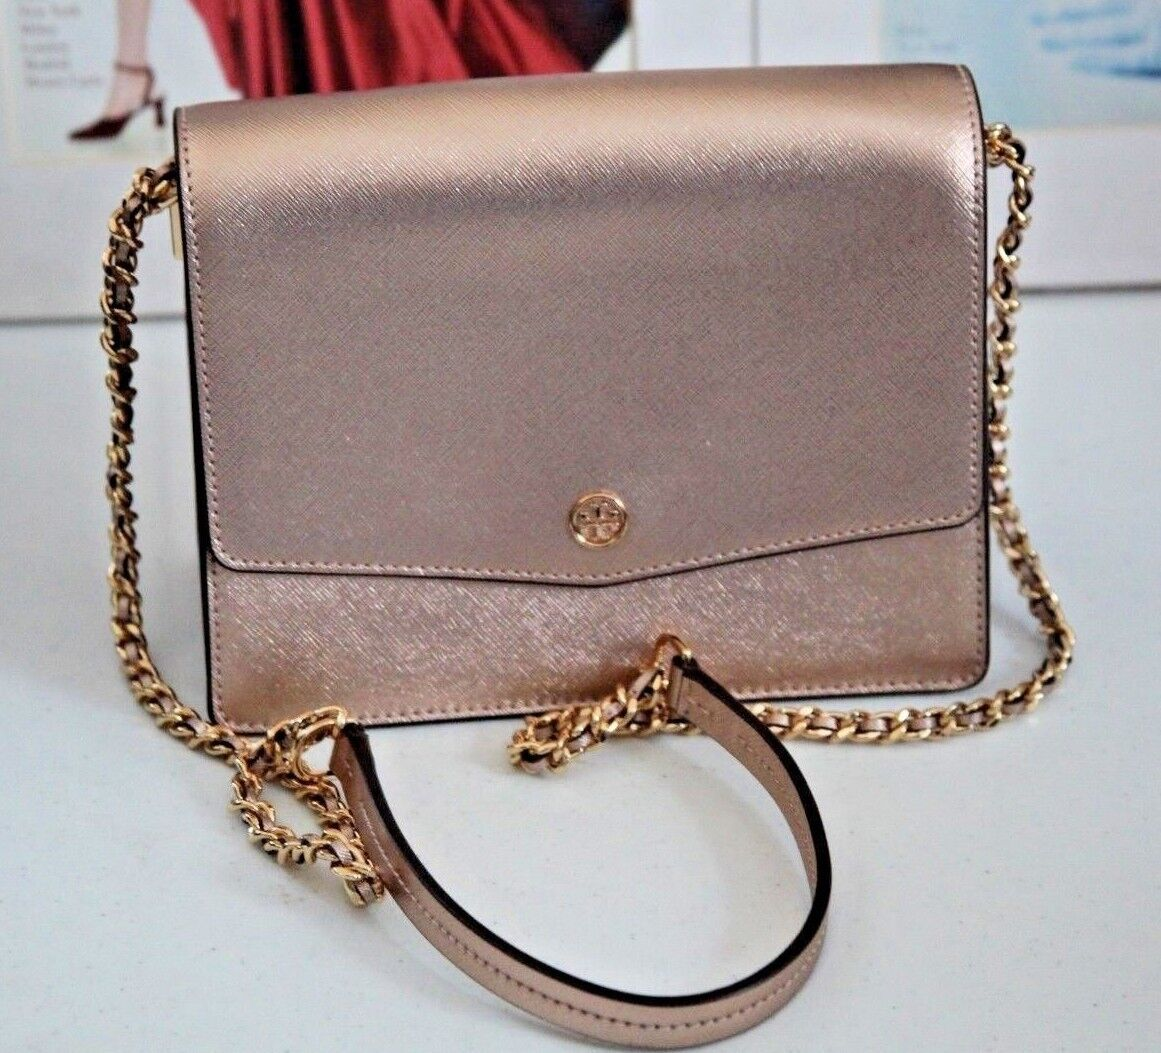 b1a87ff1cb Details about NEW TORY BURCH ROBINSON CONVERTIBLE LIGHT ROSE GOLD LEATHER  CROSSBODY